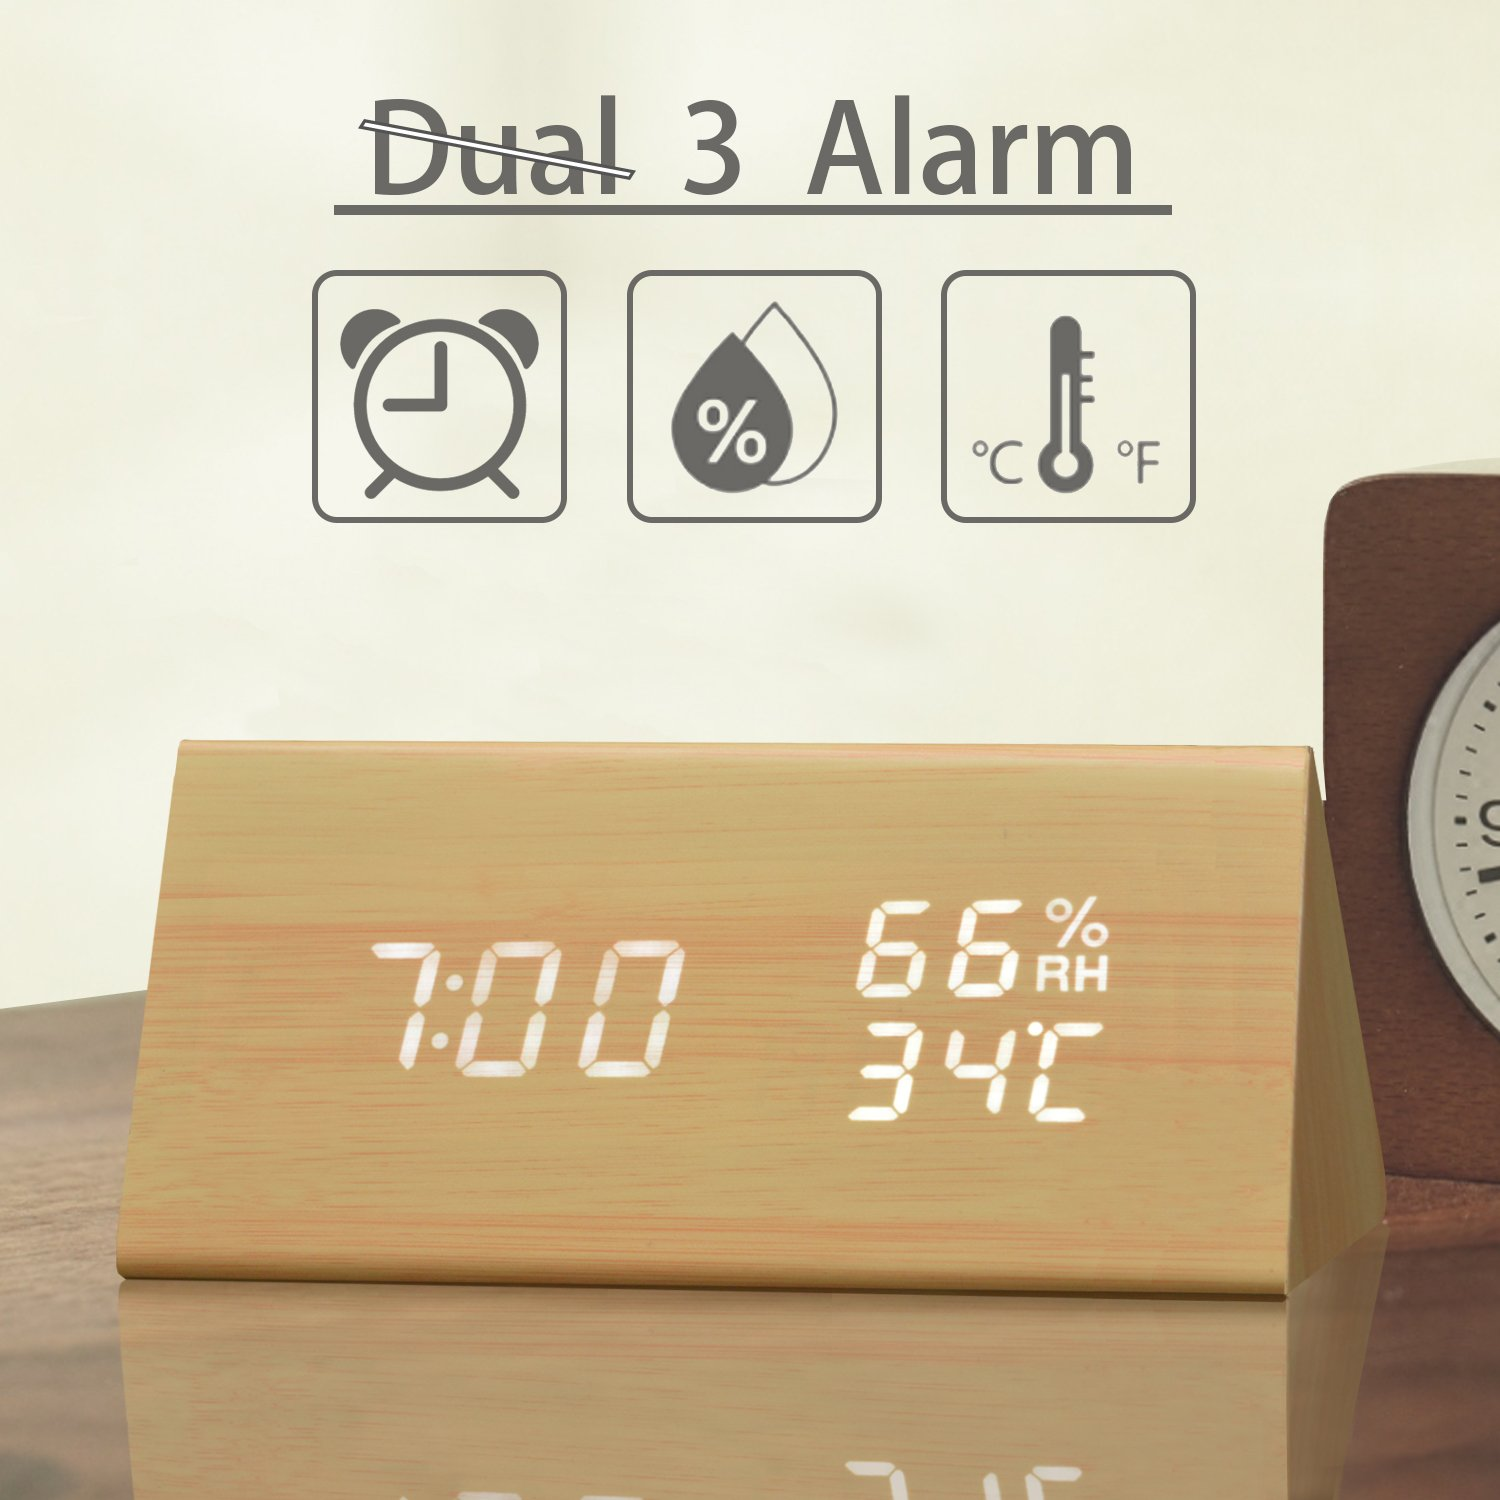 Digital Alarm Clock, 3 Alarm Settings, with Wooden Electronic LED Time Display, Dual Temperature & Humidity Detect, Ideal for Bedroom, Bedside Kids, Batteries not Needed TooTa